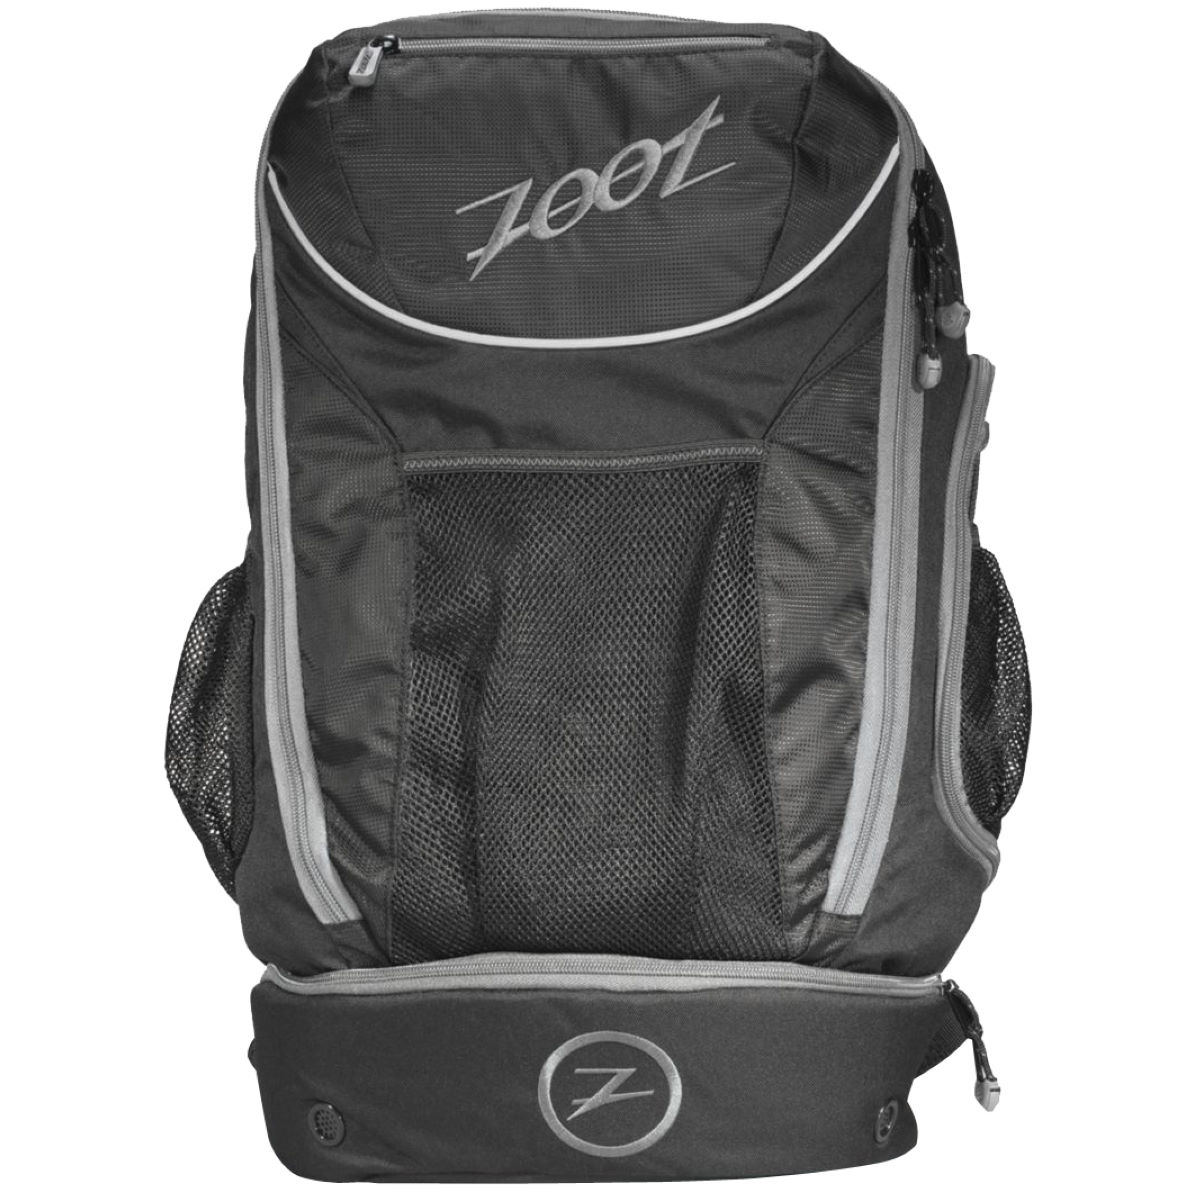 Sac de transition Zoot Performance 2015 - One Size Noir/Bleu